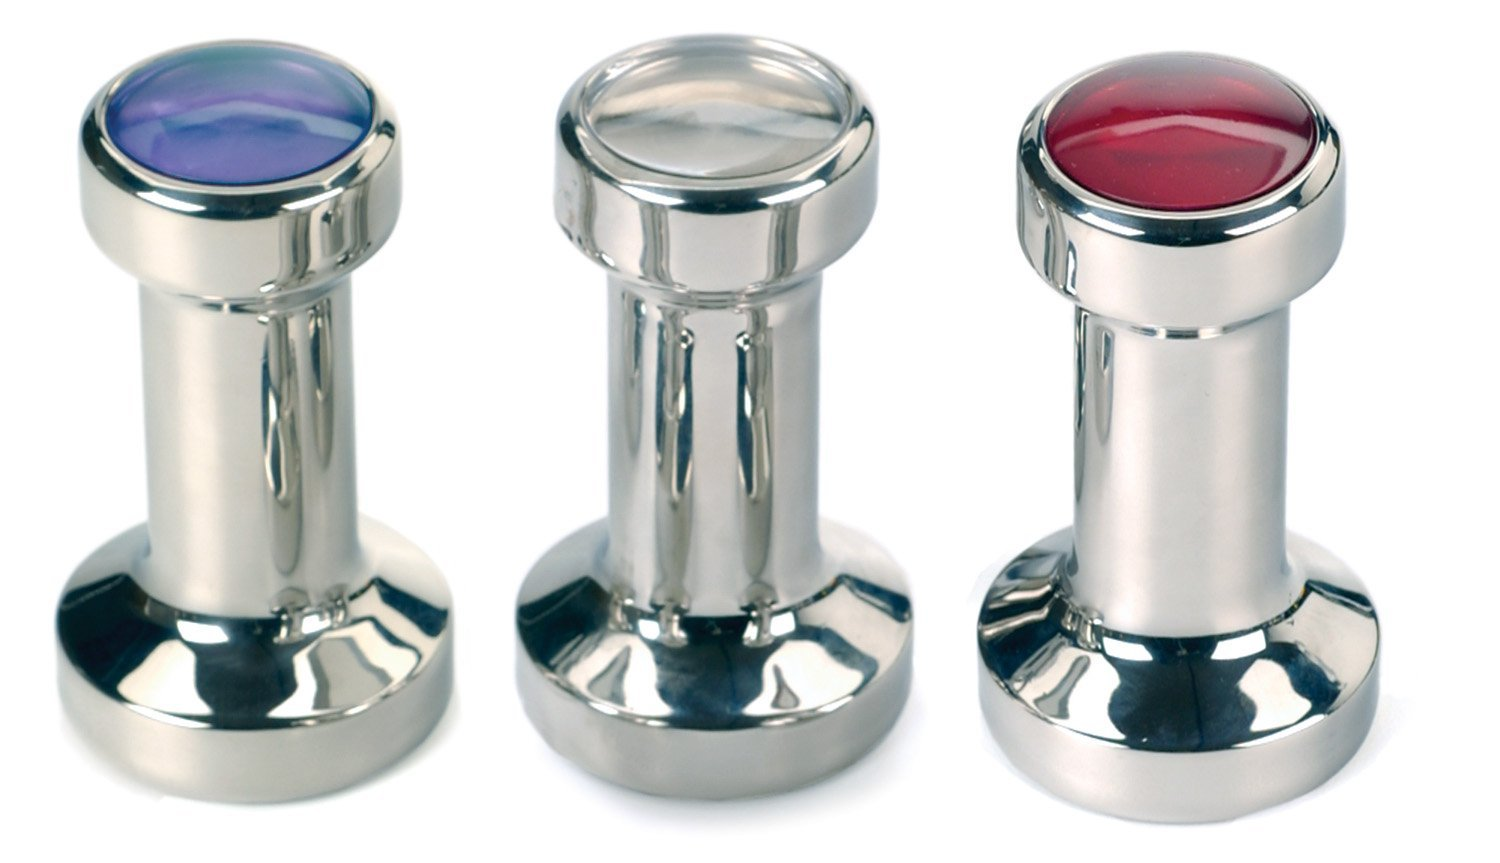 Red 49mm Espresso Tamper Stainless Steel Coffee